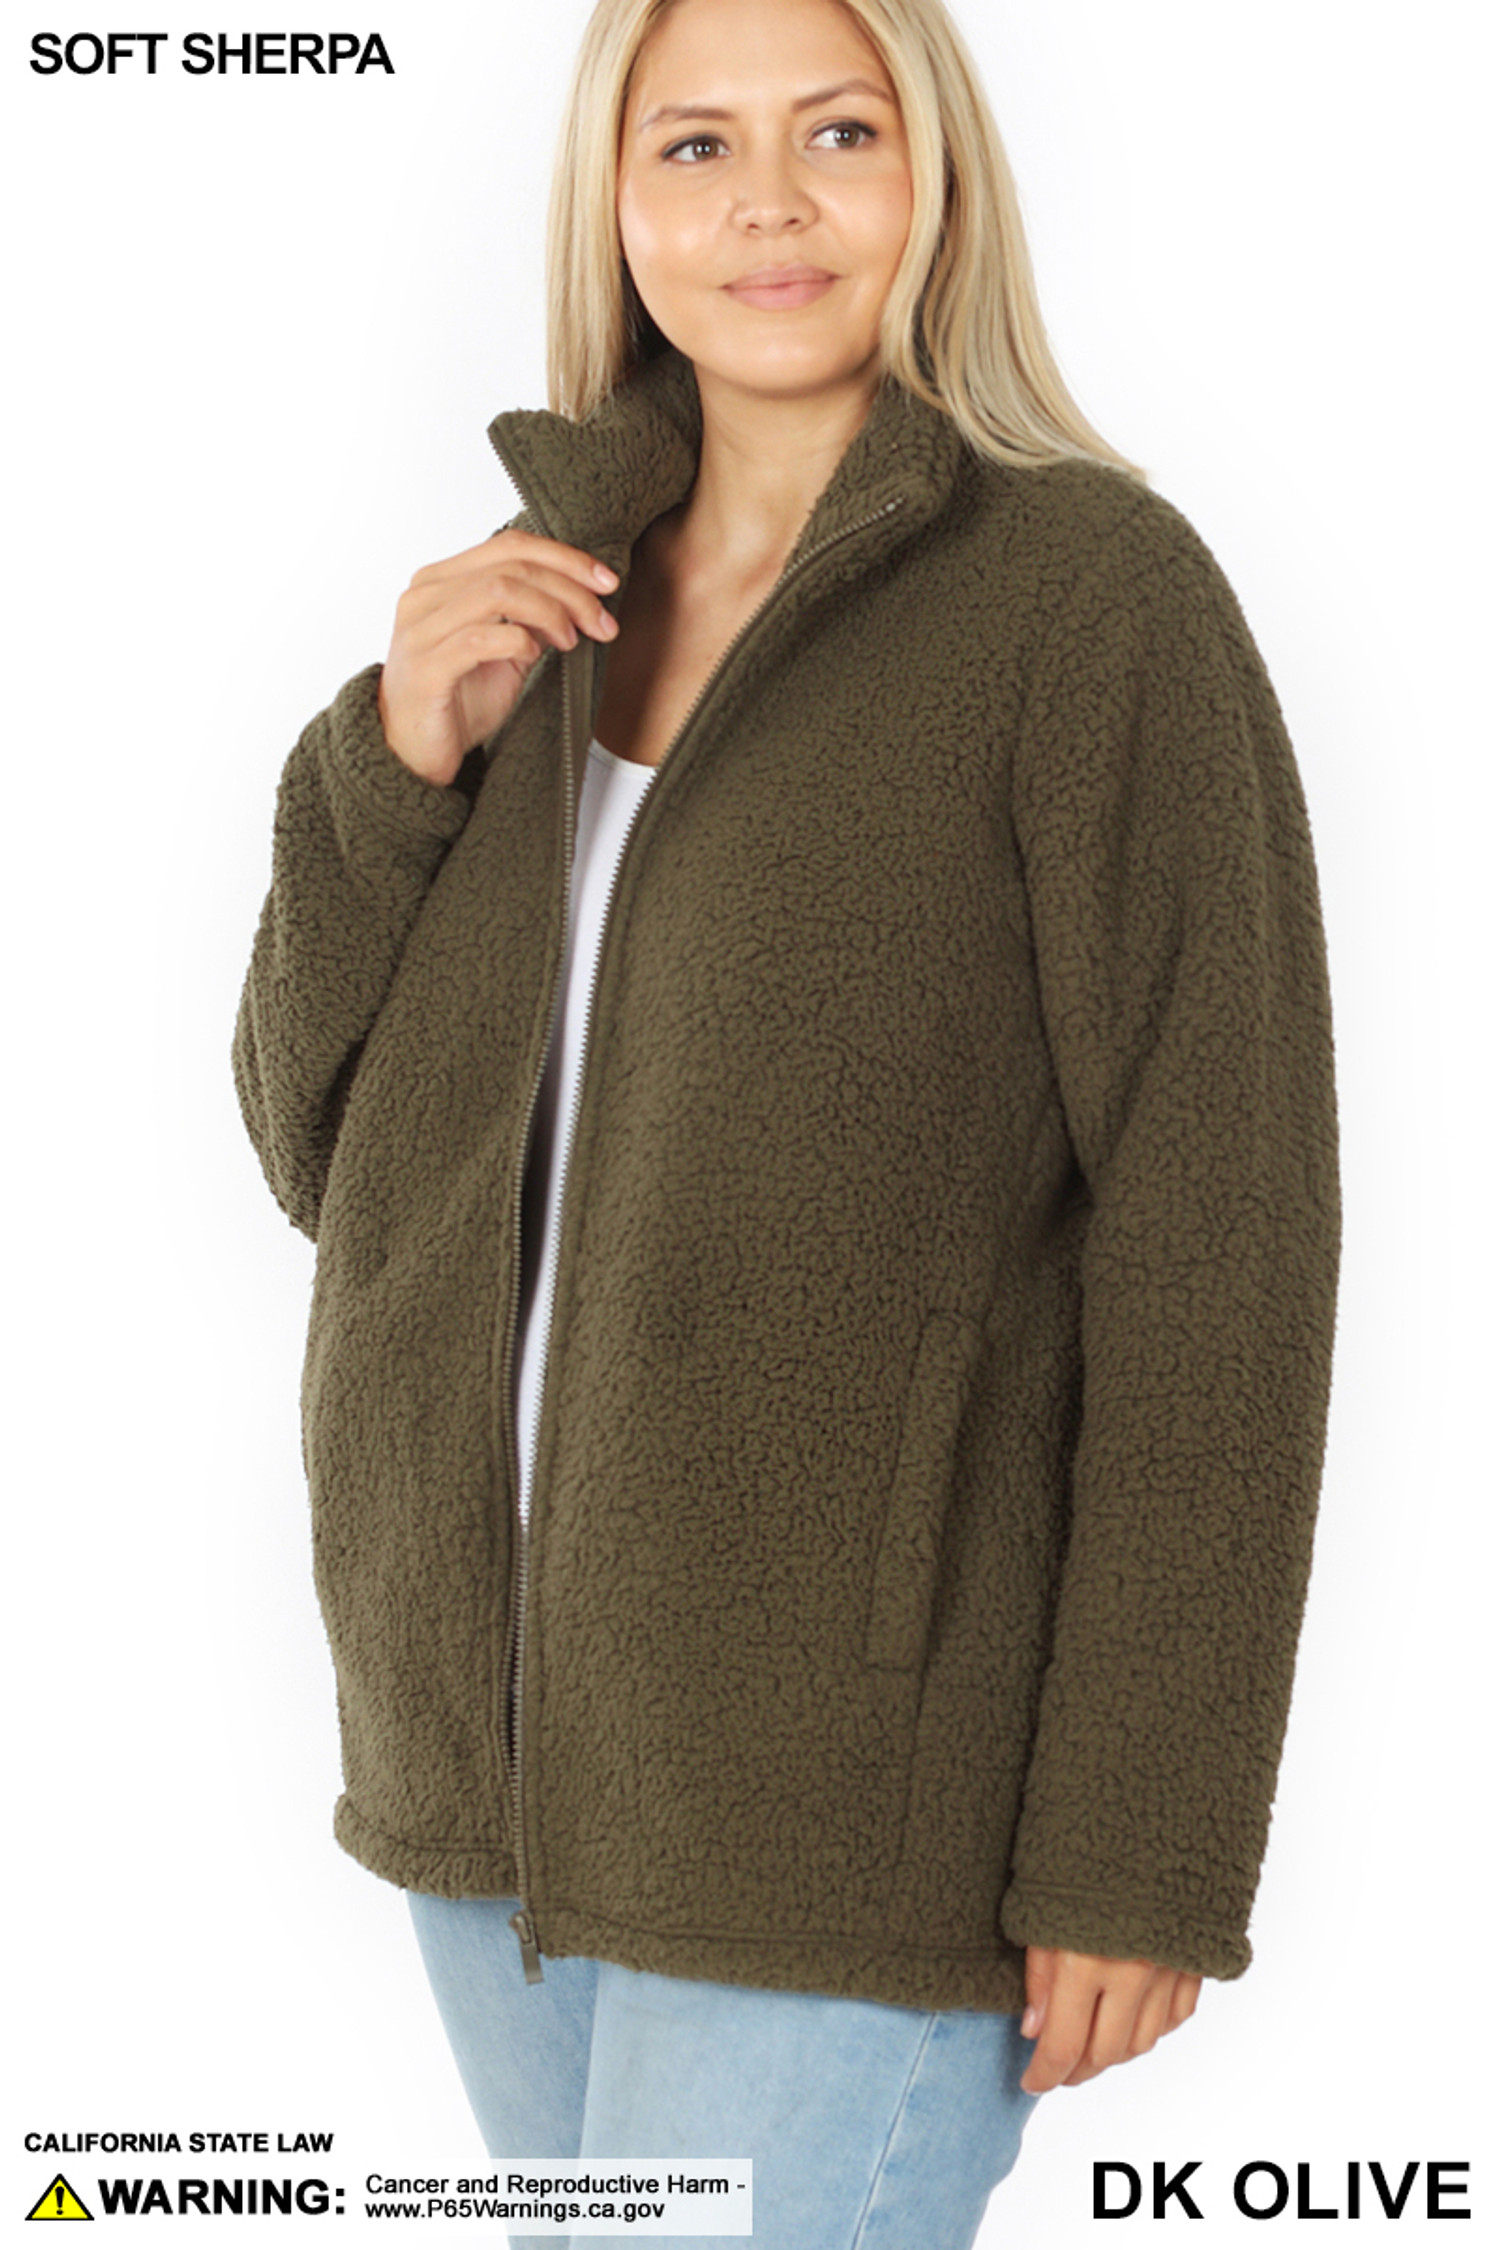 45 degree unzipped image of Dark Olive Sherpa Zip Up Plus Size Jacket with Side Pockets